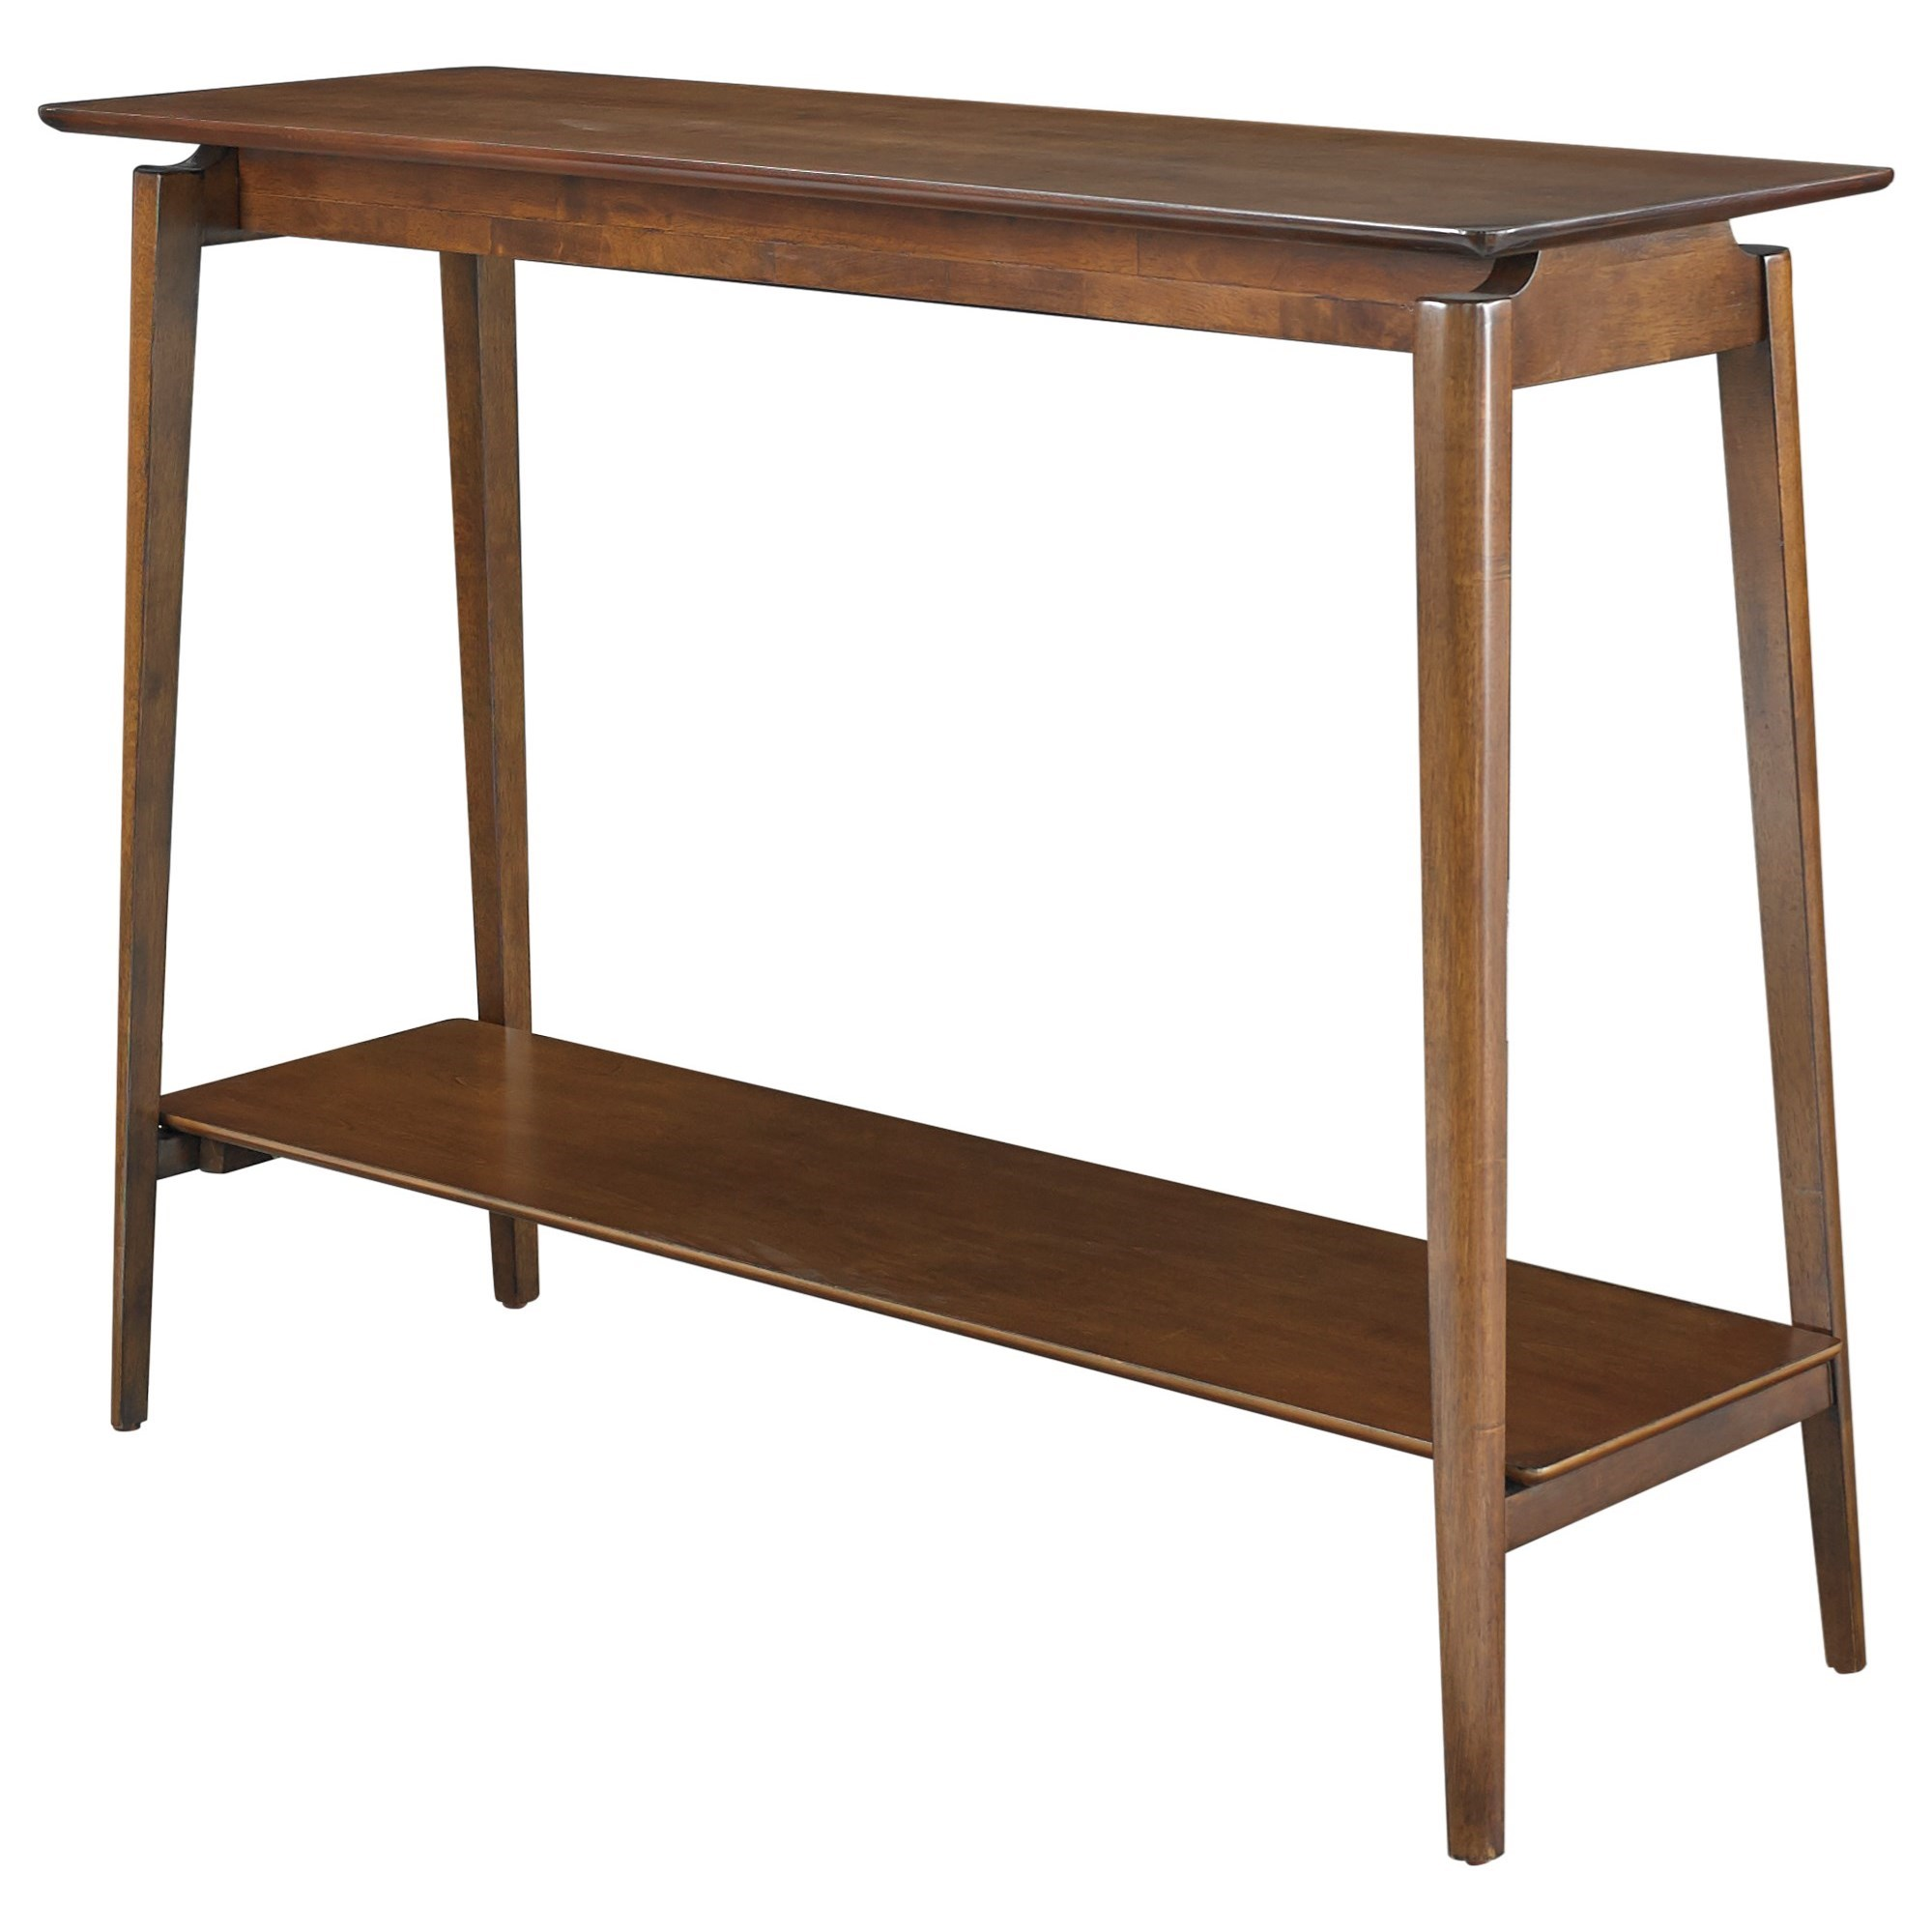 Accent Furniture-637629934 Marissa Sofa Table by Powell at A1 Furniture & Mattress